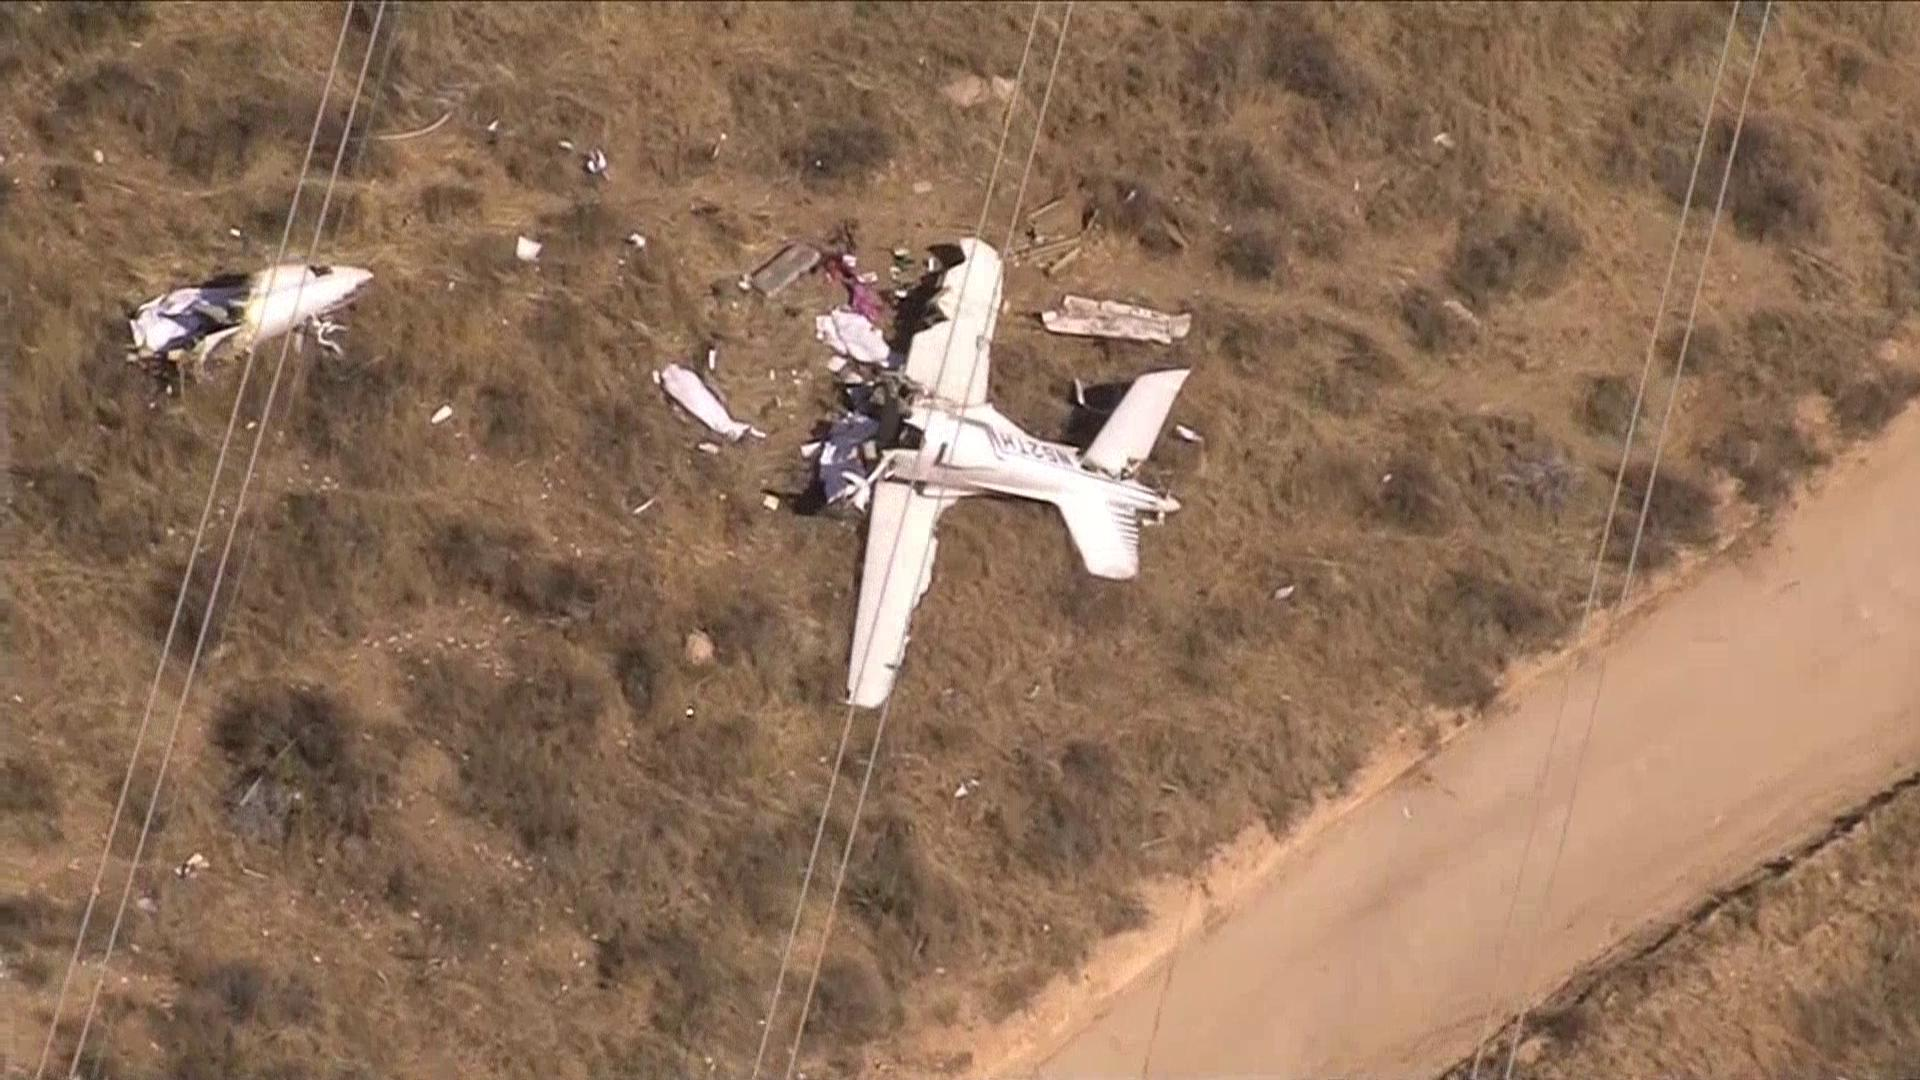 NA33Y CA SMALL PLANE CRASH{&amp;nbsp;}<p></p>